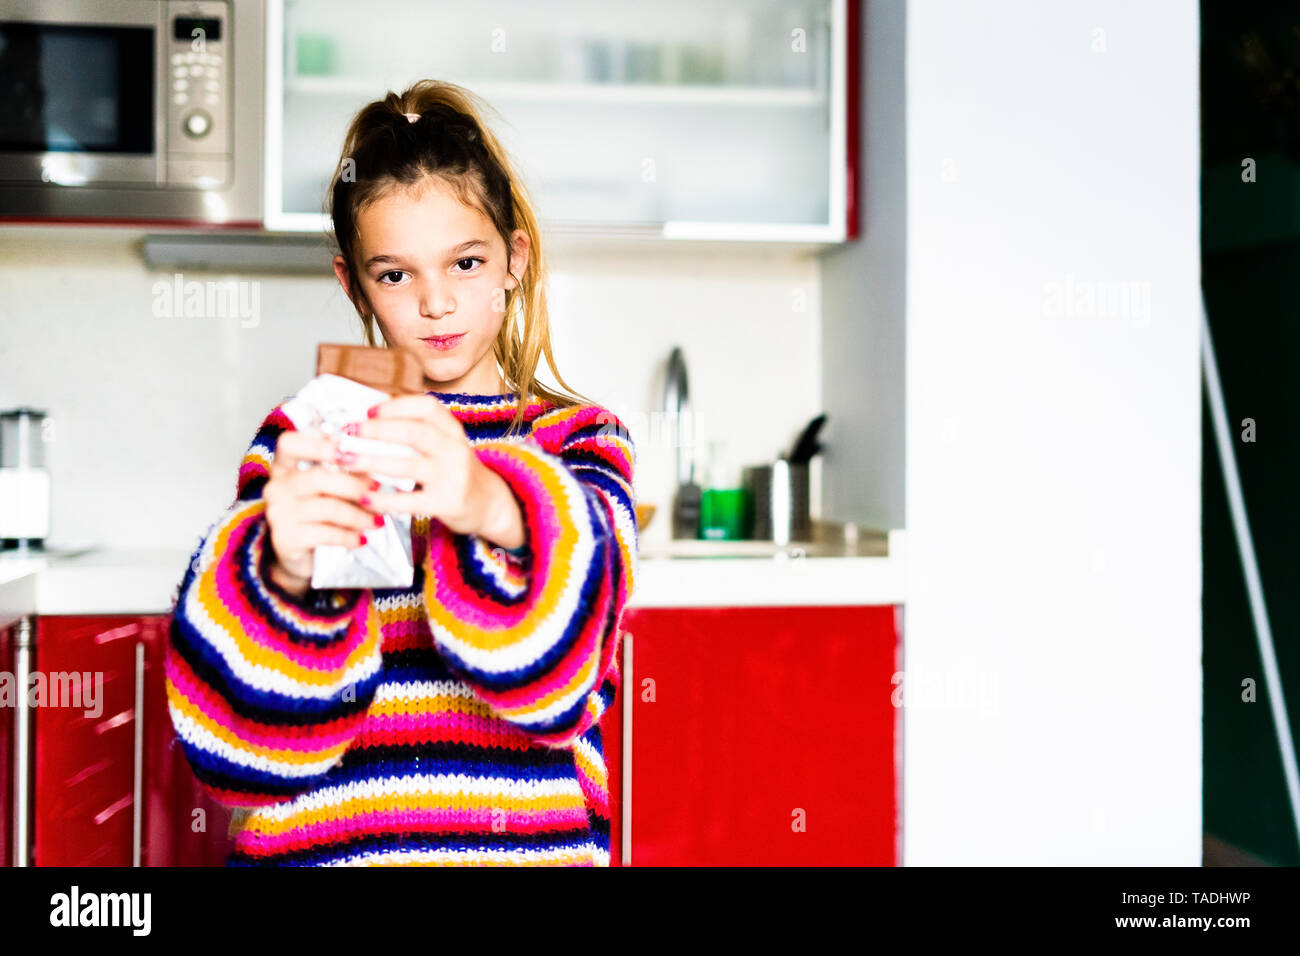 Portrait of girl in striped pullover in kitchen at home eating chocolate - Stock Image